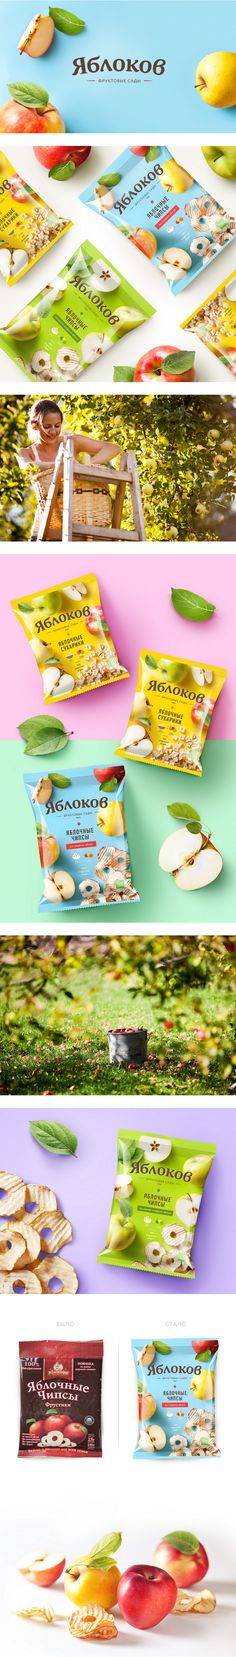 81 Best 香菇脆 images in 2016   Packaging design, Food